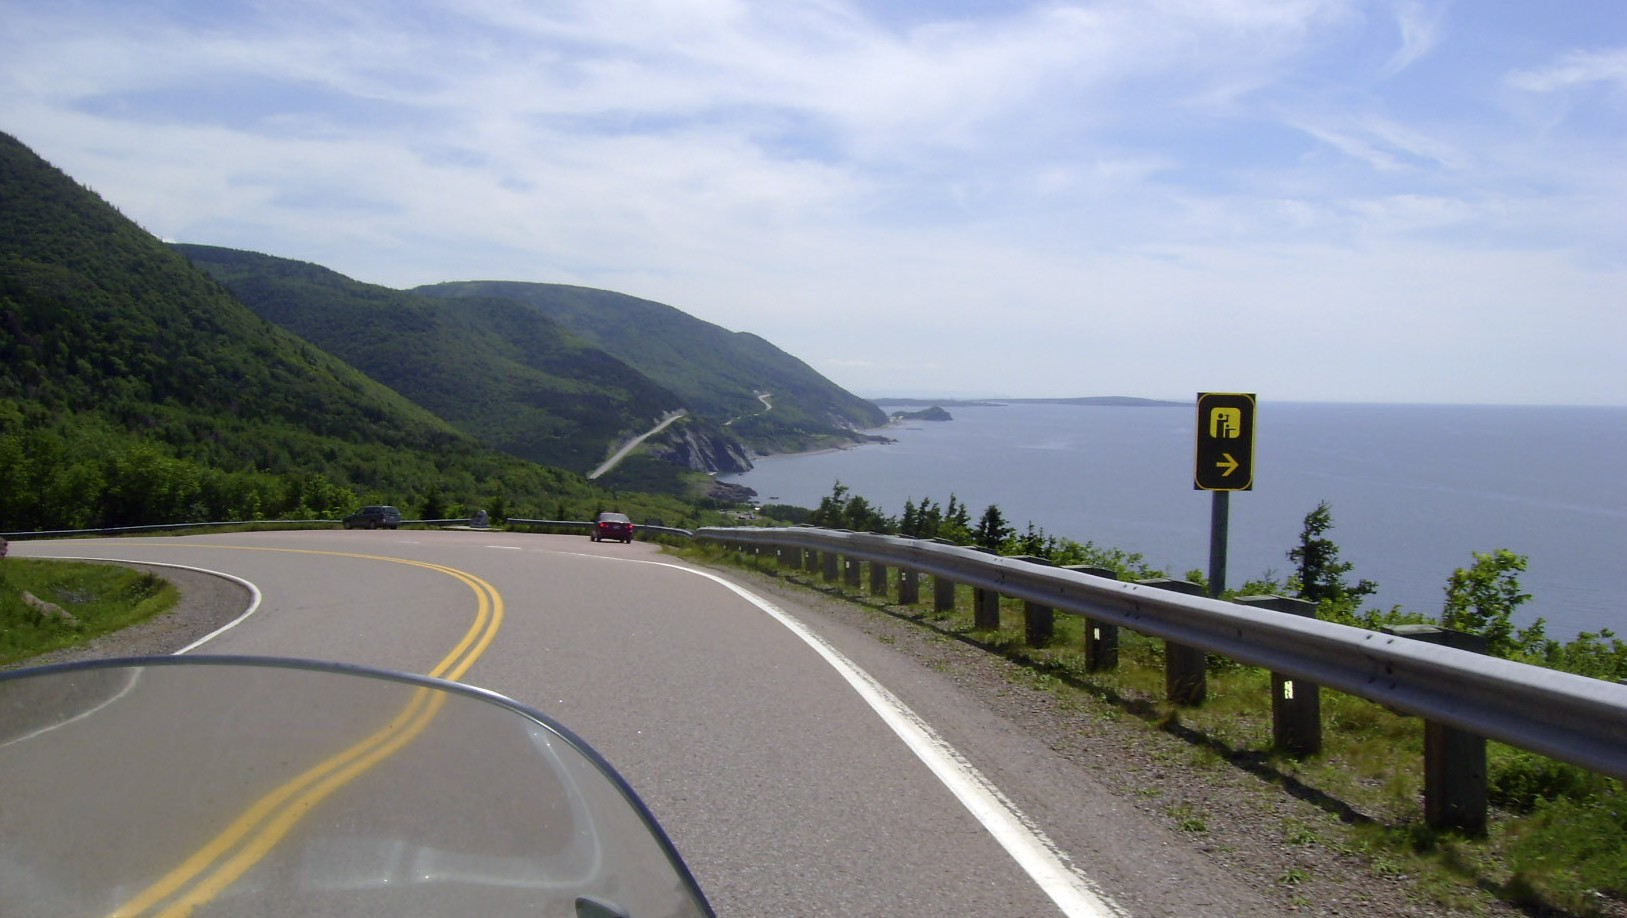 This July 13, 2010 photo shows the road along the eastern edge of Cape Breton Island during a 1,555-mile motorcycle tour along the Cabot Trail in Cape Breton, Nova Scotia.    ()